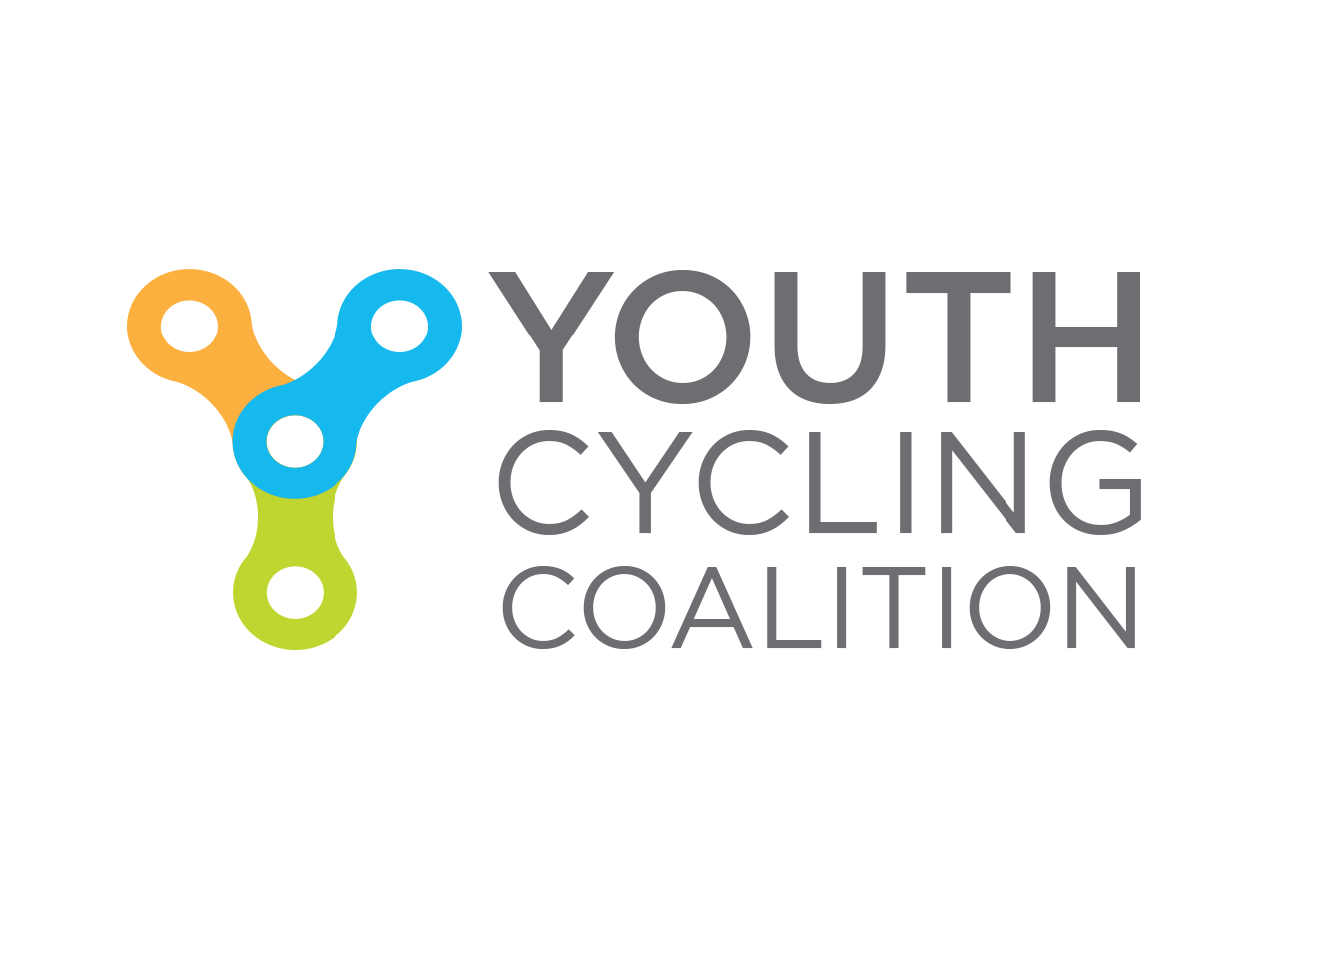 Youth Cycling Coalition - Ten organizations coming together to impact one city with one common goal.